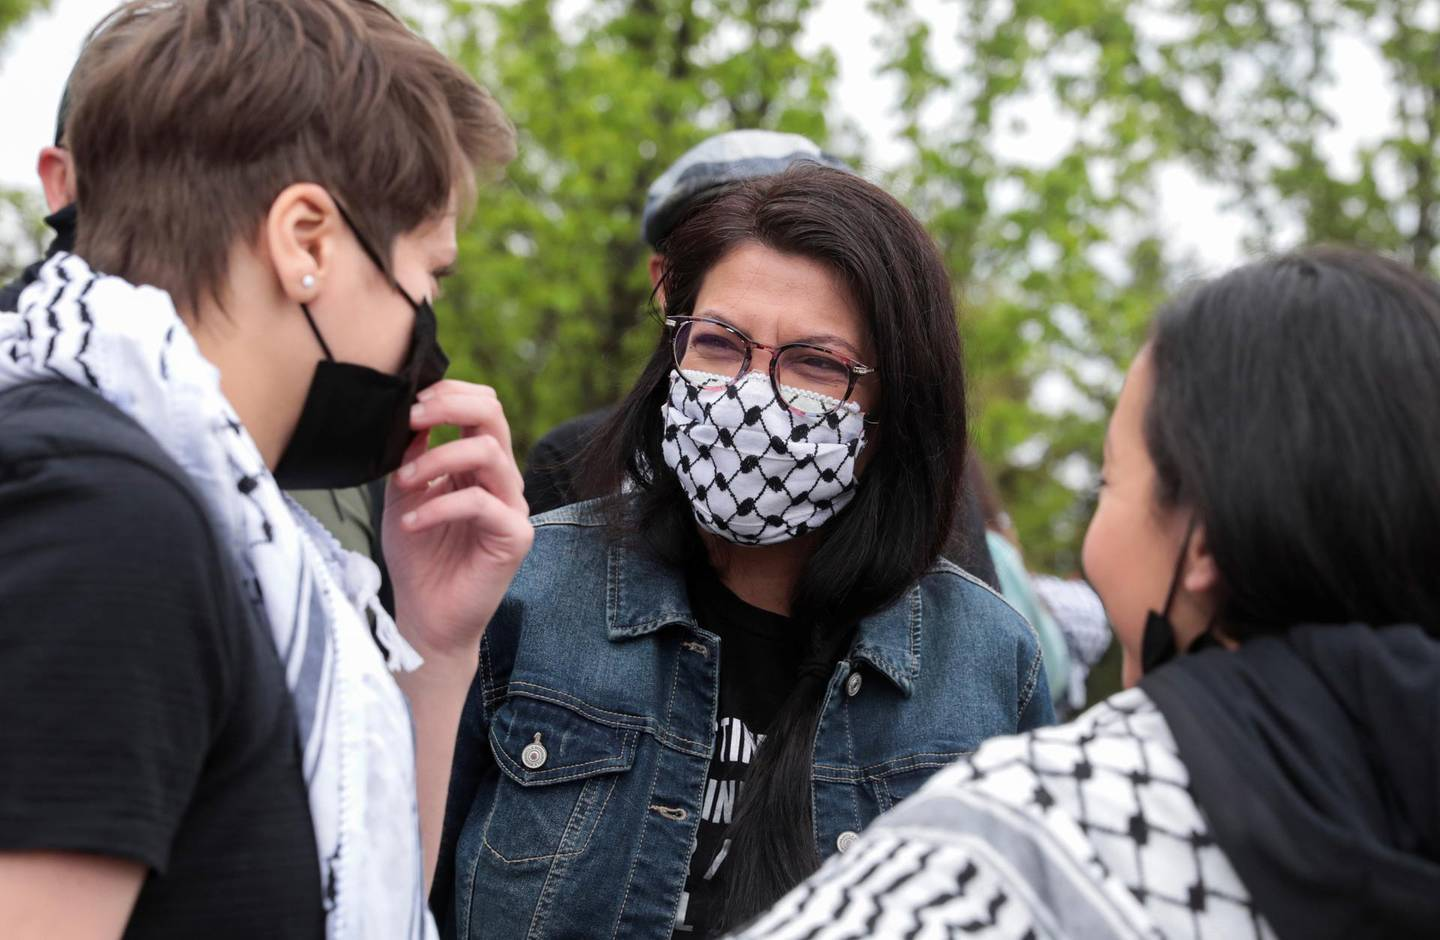 Palestinian-American congresswoman Rashida Tlaib attends a pro-Palestinian protest in Dearborn, Michigan, U.S., May 16, 2021. Picture taken May 16, 2021. REUTERS/Rebecca Cook